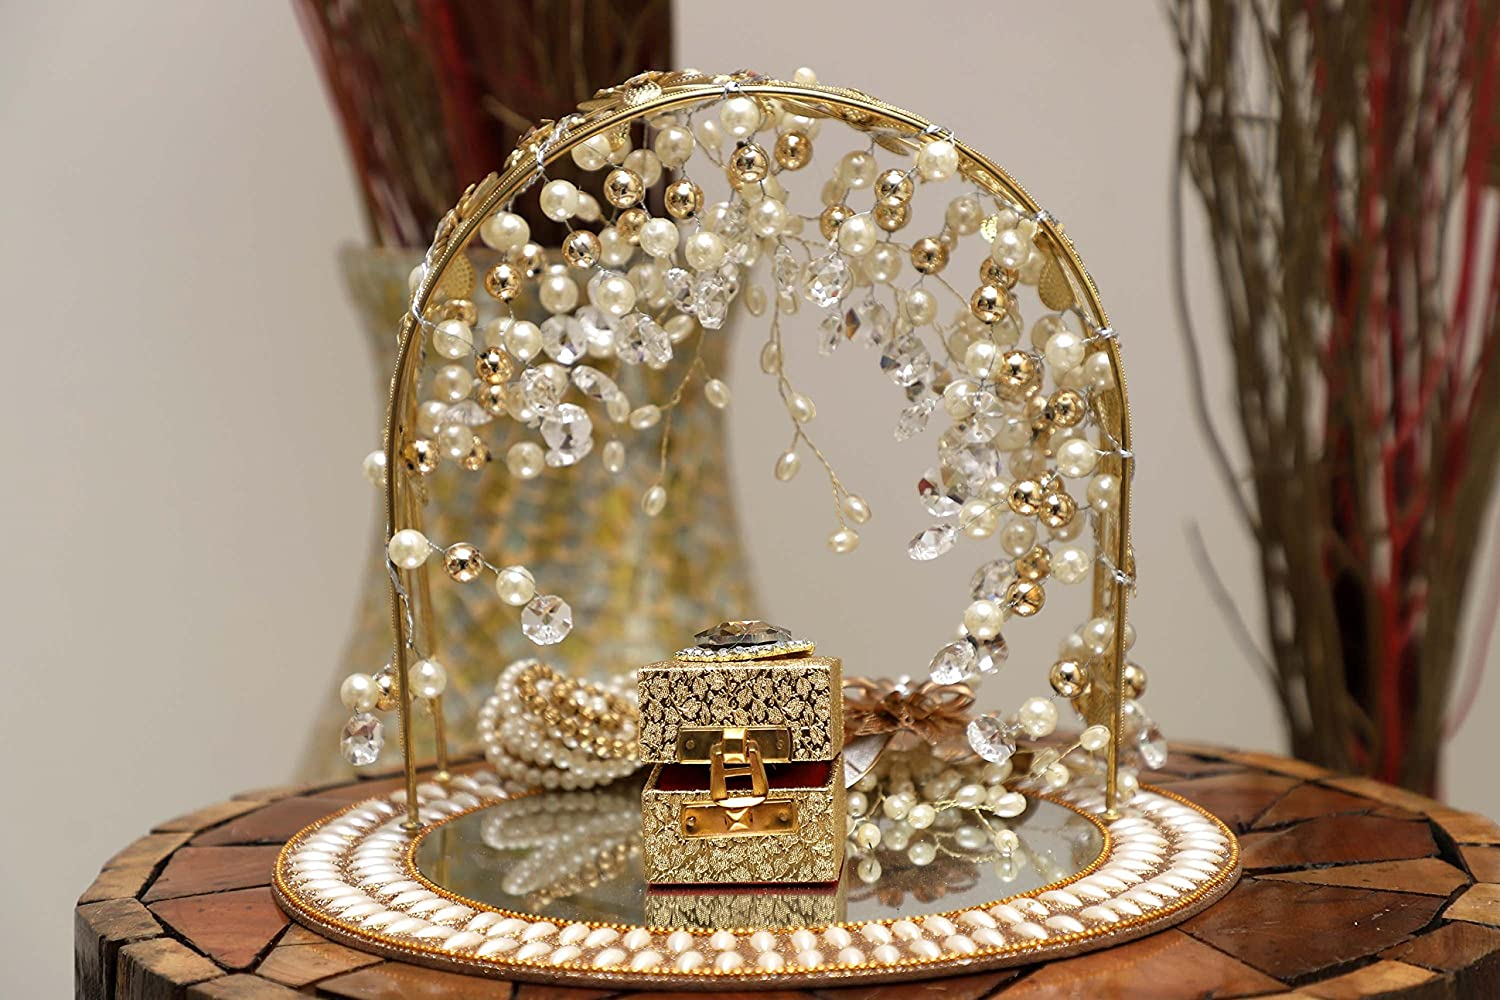 Buy Giftingbestwishes Tray Decorative Tray Engagement Ring Platter Engagement Ring Tray Pearl Drop Online At Low Prices In India Amazon In